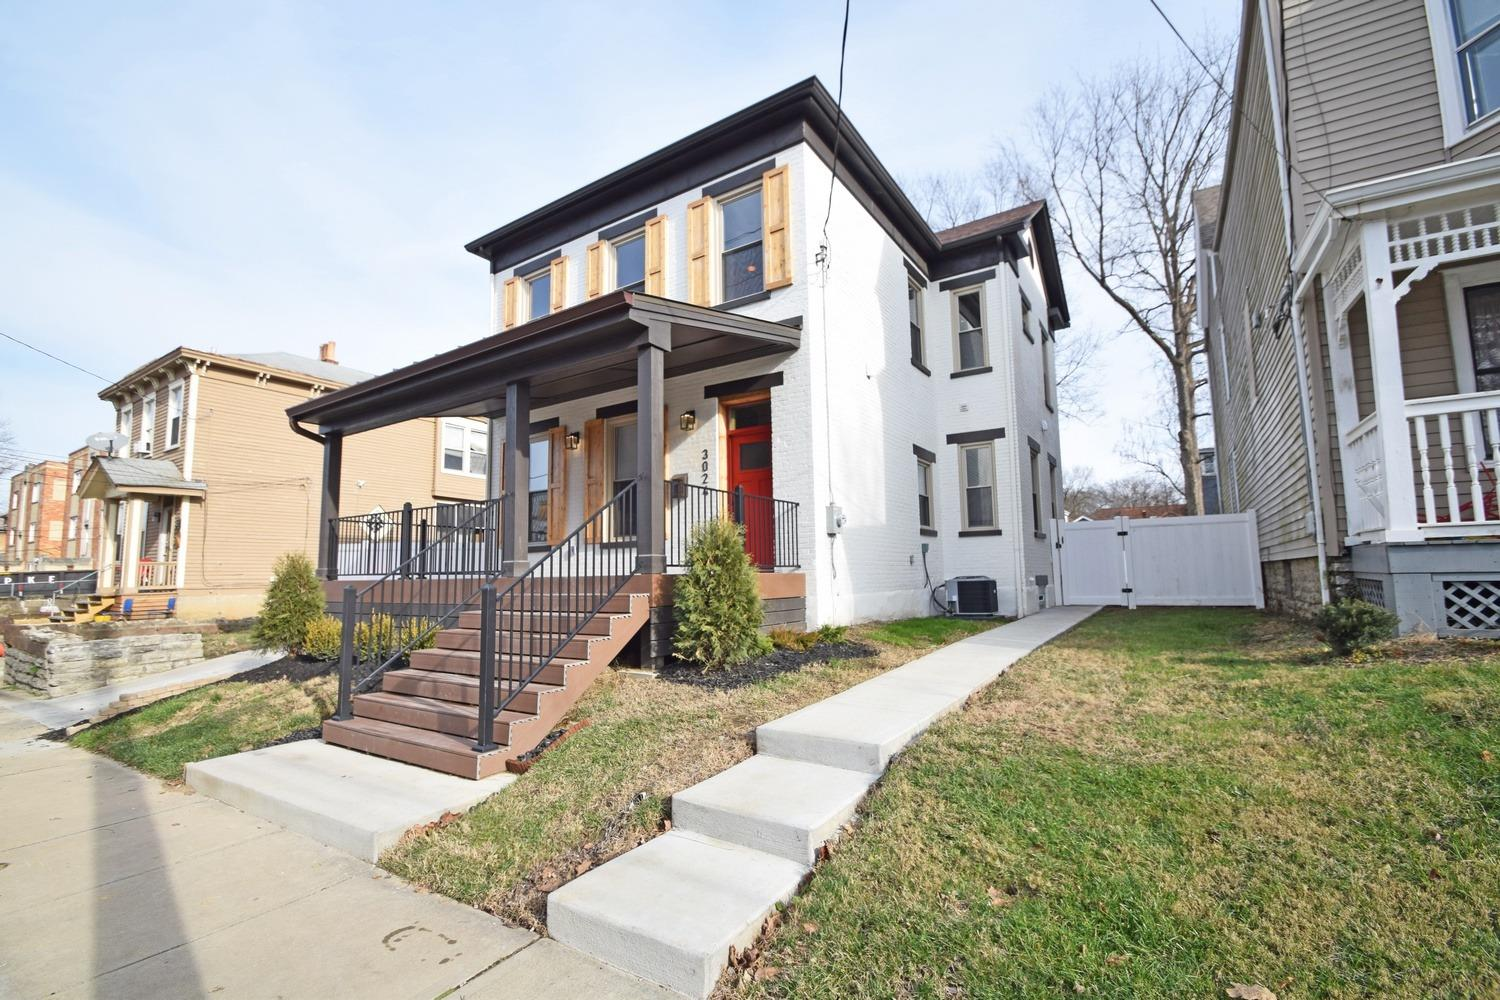 Photo 3 for 3024 Hackberry St Evanston, OH 45206